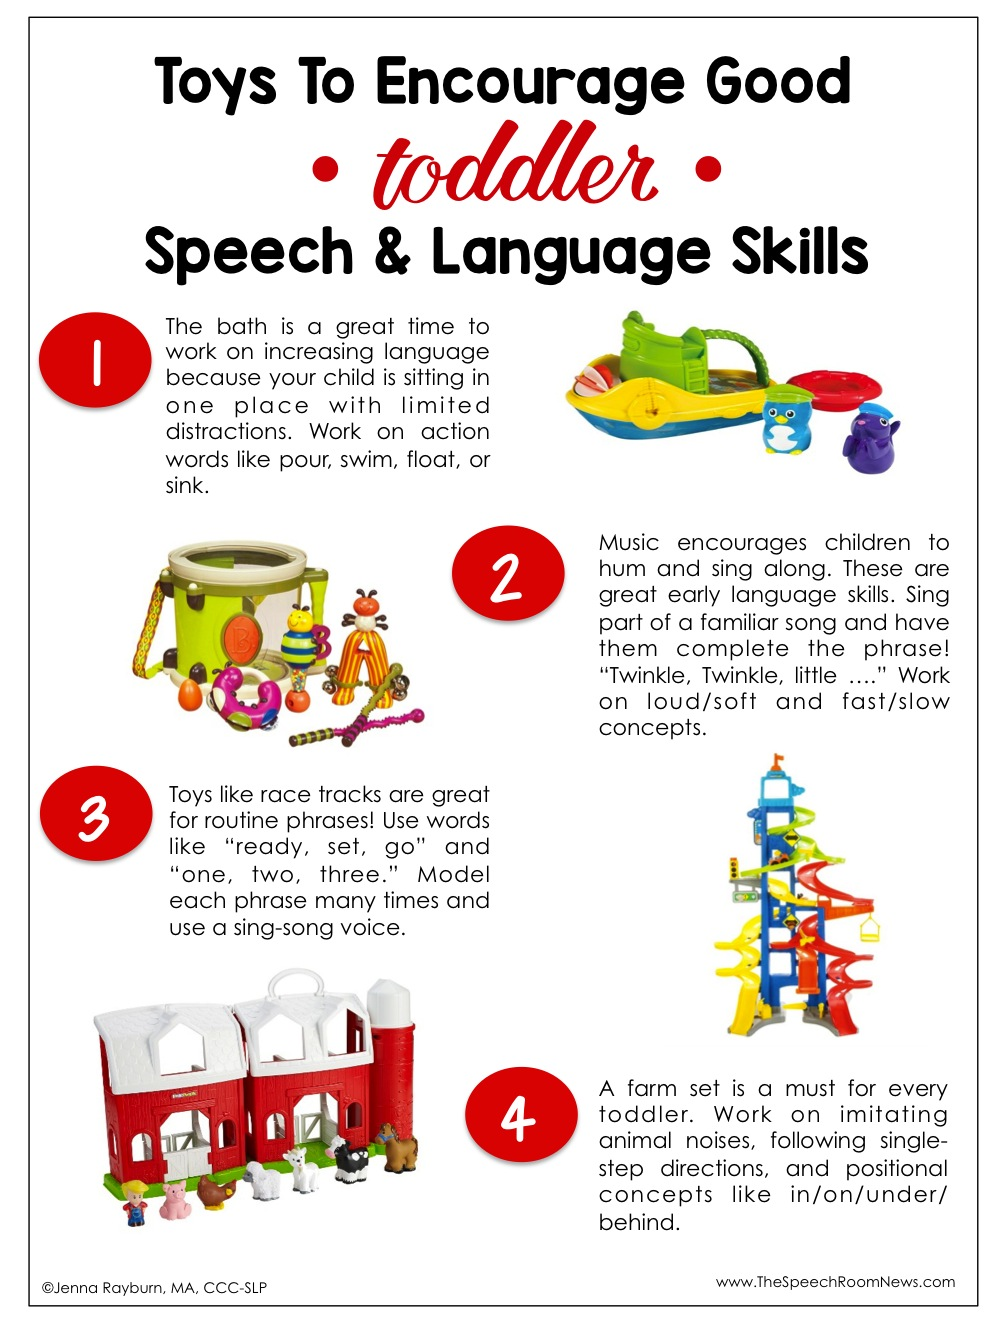 Supple Toddler Toys Speech Skills Toys To Increase Speech Language Skills Speech Room News Toddler Toys 2 Year S Toddler Toys Air Travel baby Best Toddler Toys